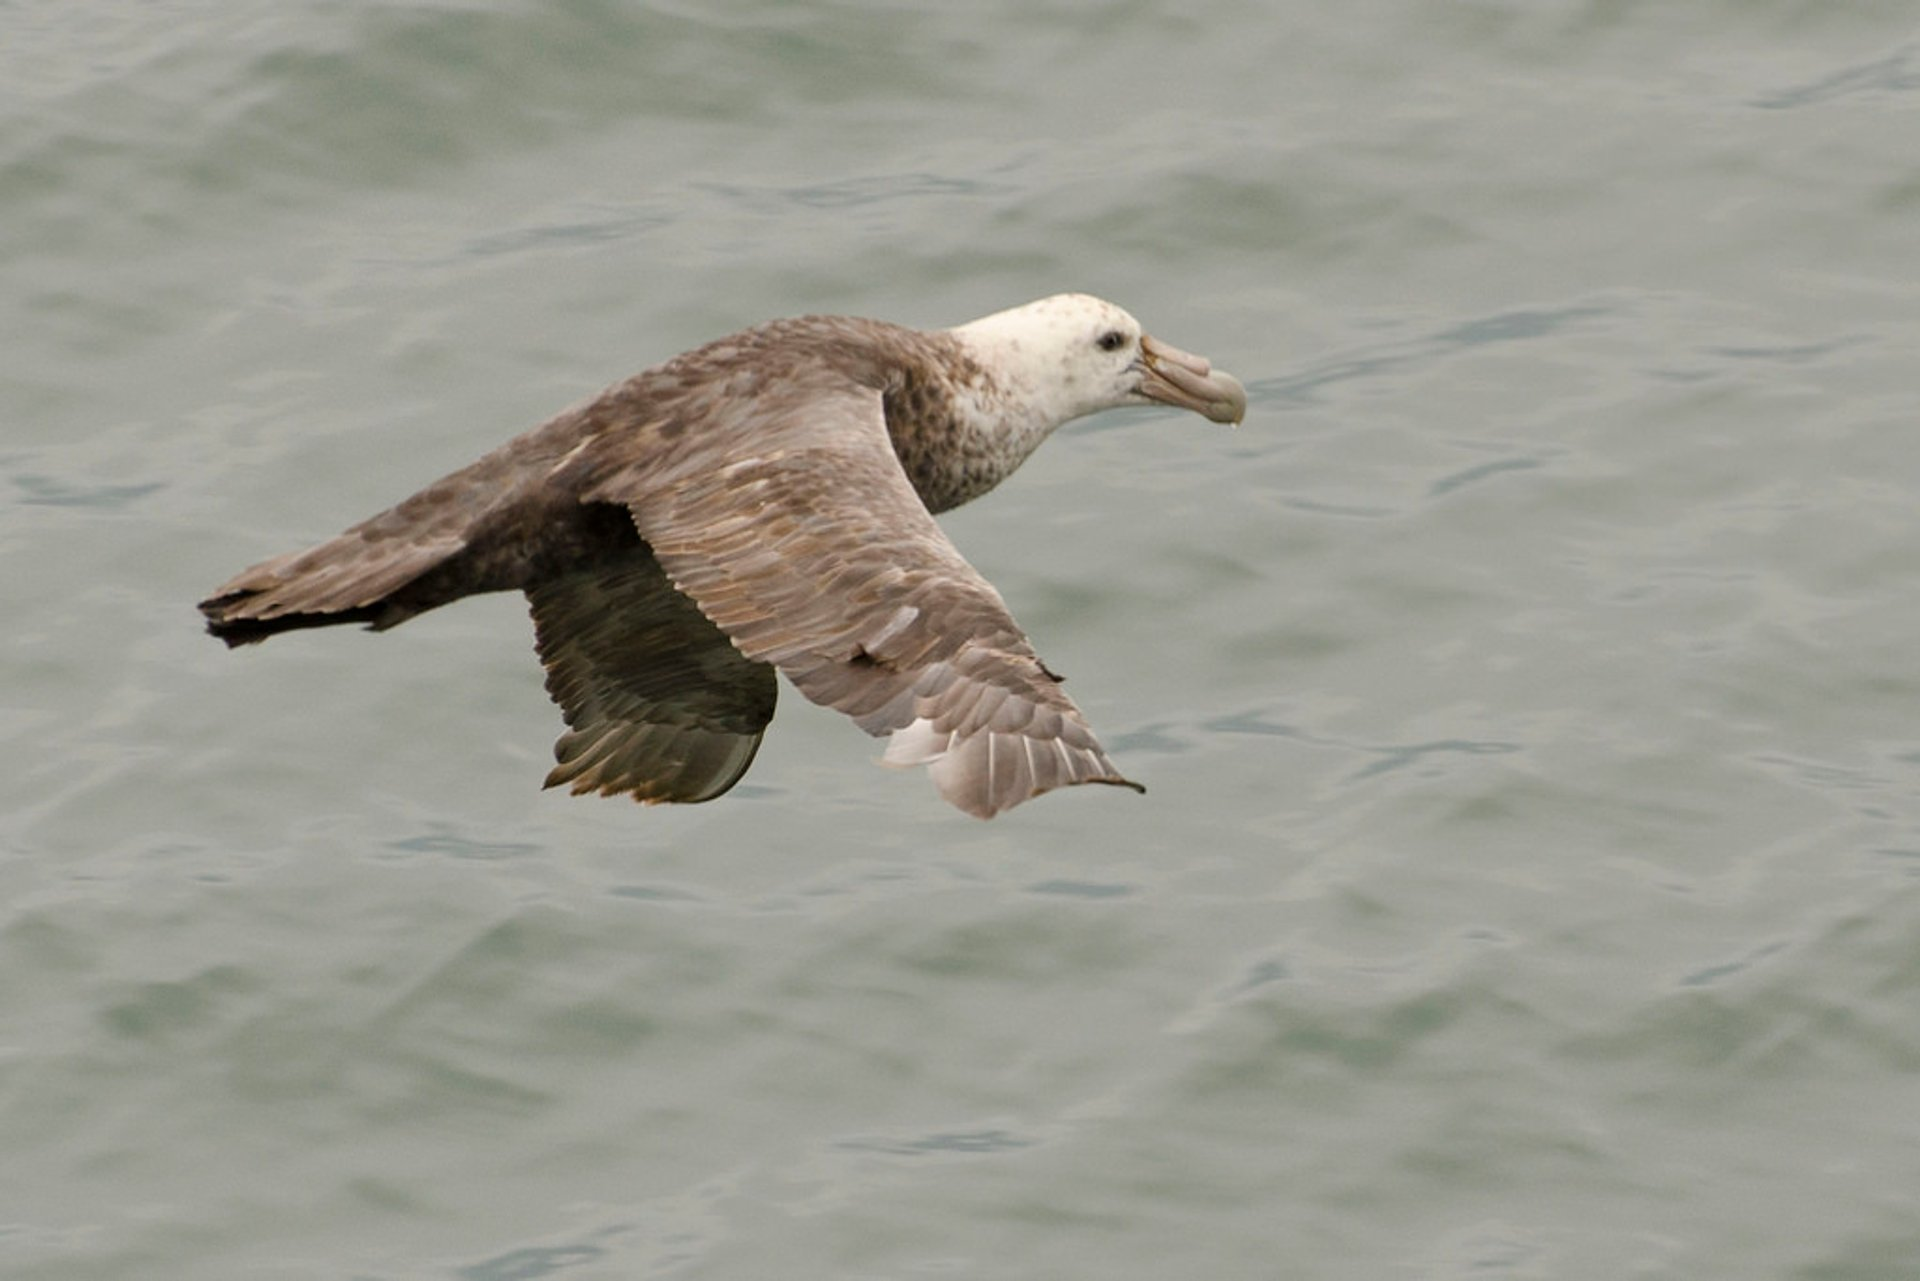 Southern Giant Petrel in Argentina - Best Season 2020